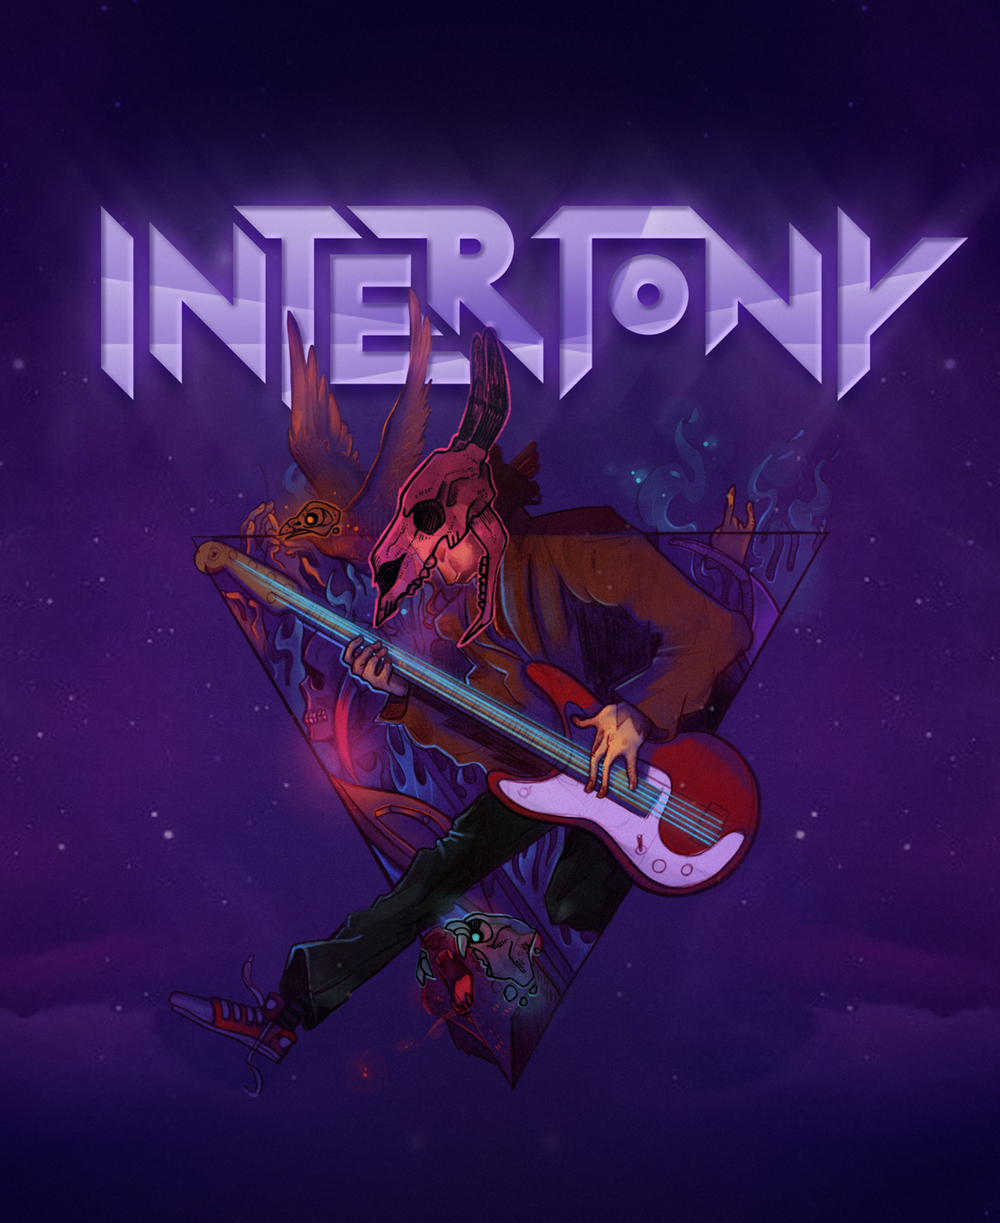 Intertony